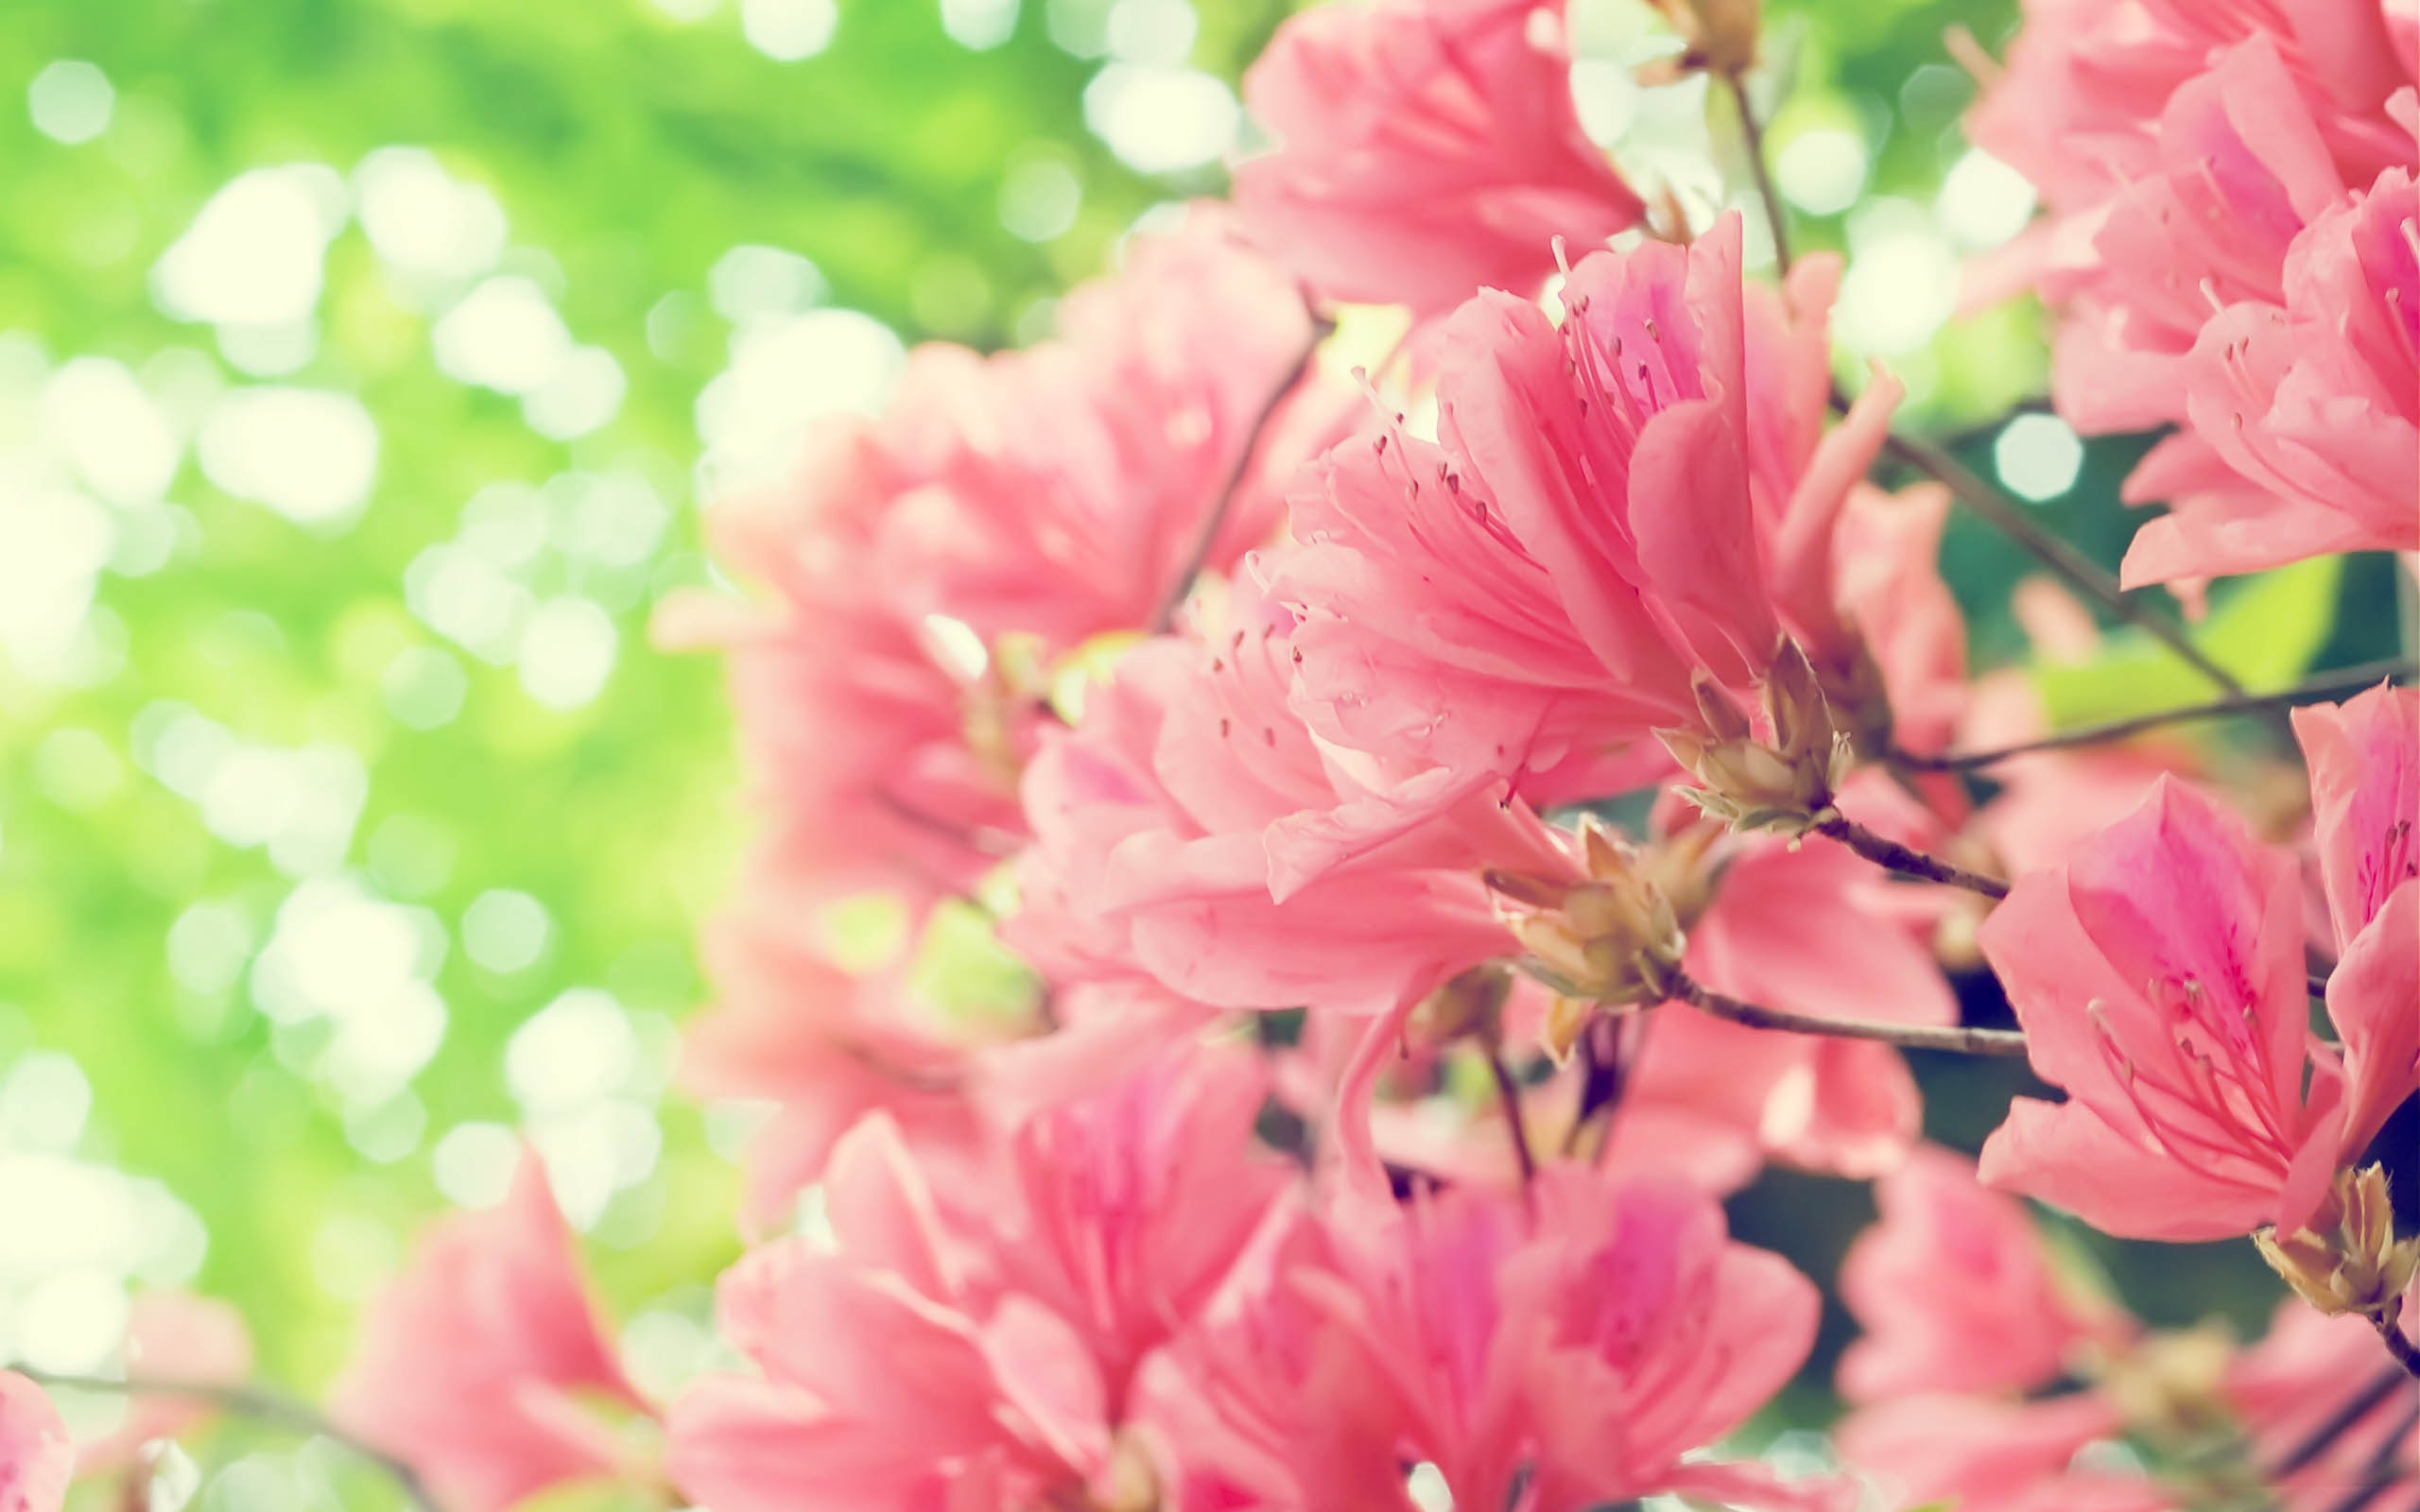 Free picture of spring flowers vector free library Spring Flowers Wallpapers High Resolution - Zuhurtv.com vector free library